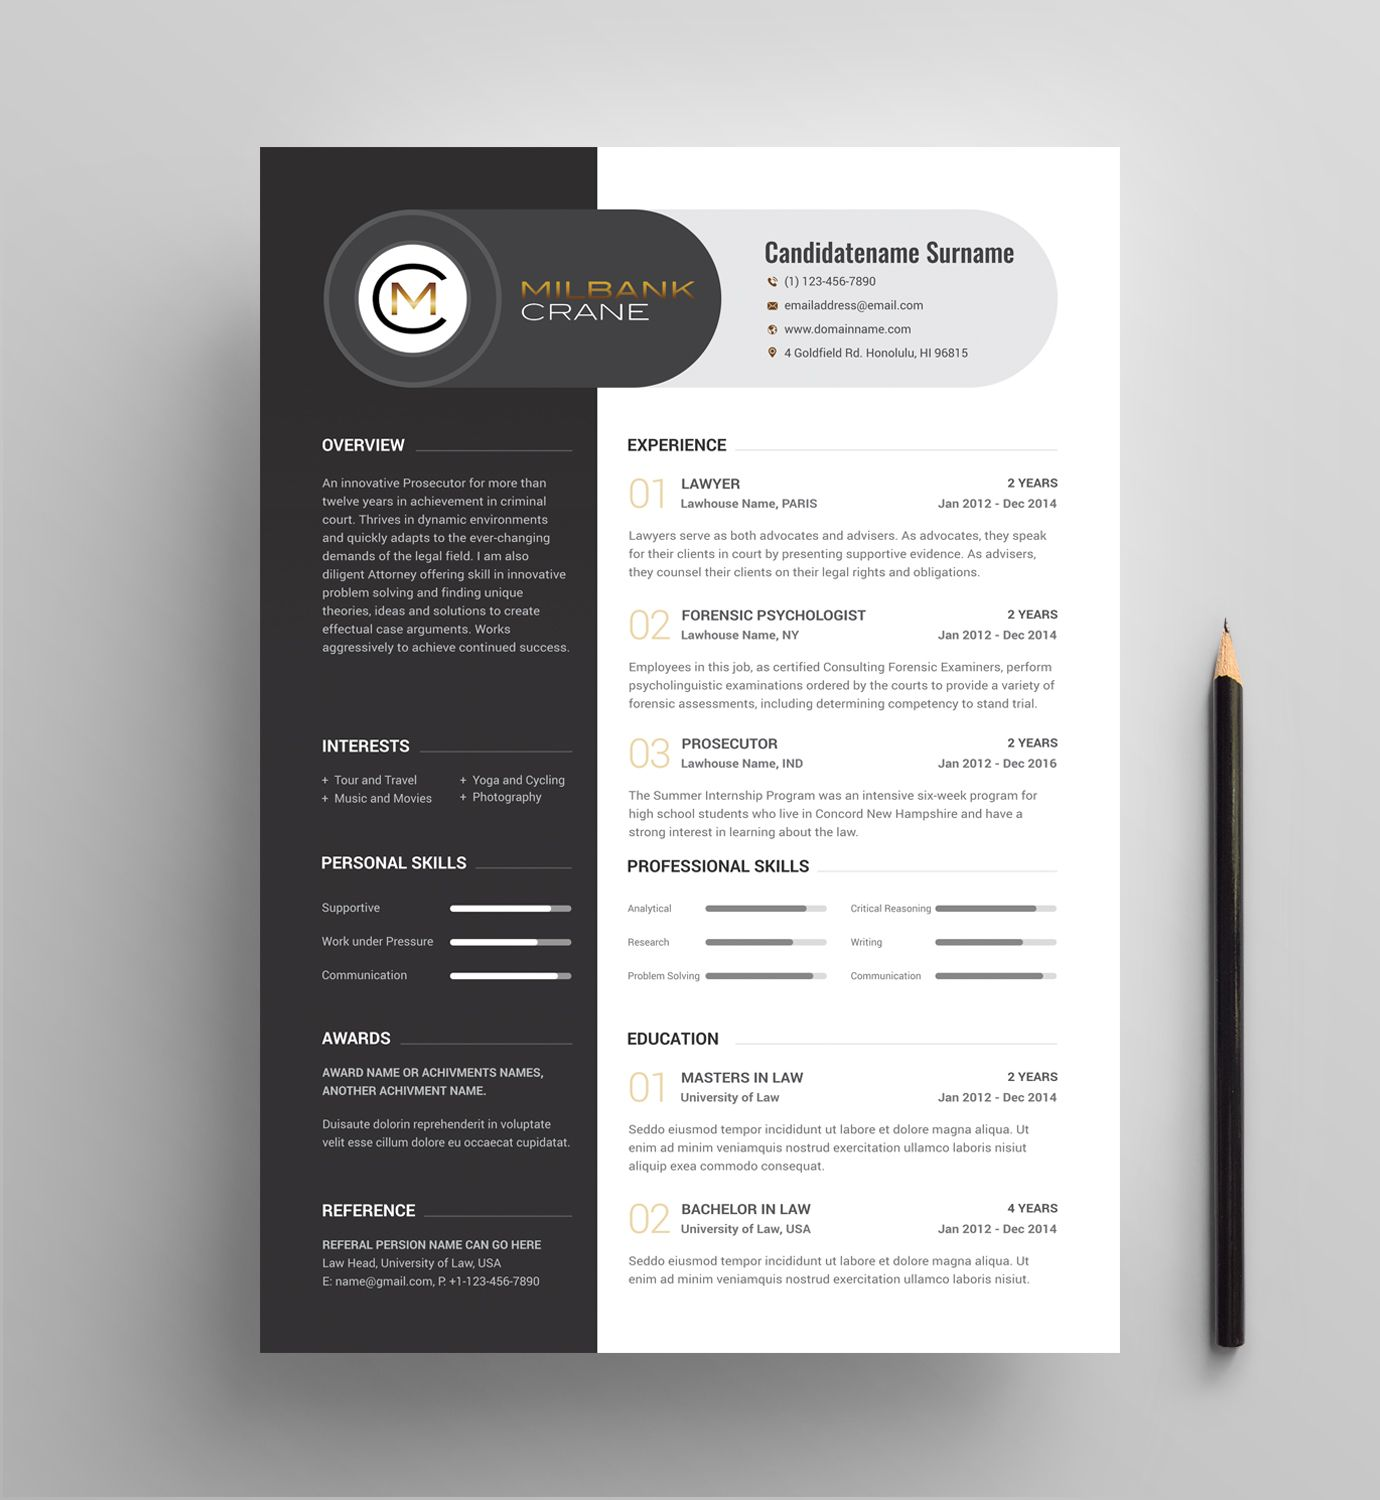 Legal search firm CV template to send out to law firm partners and ...